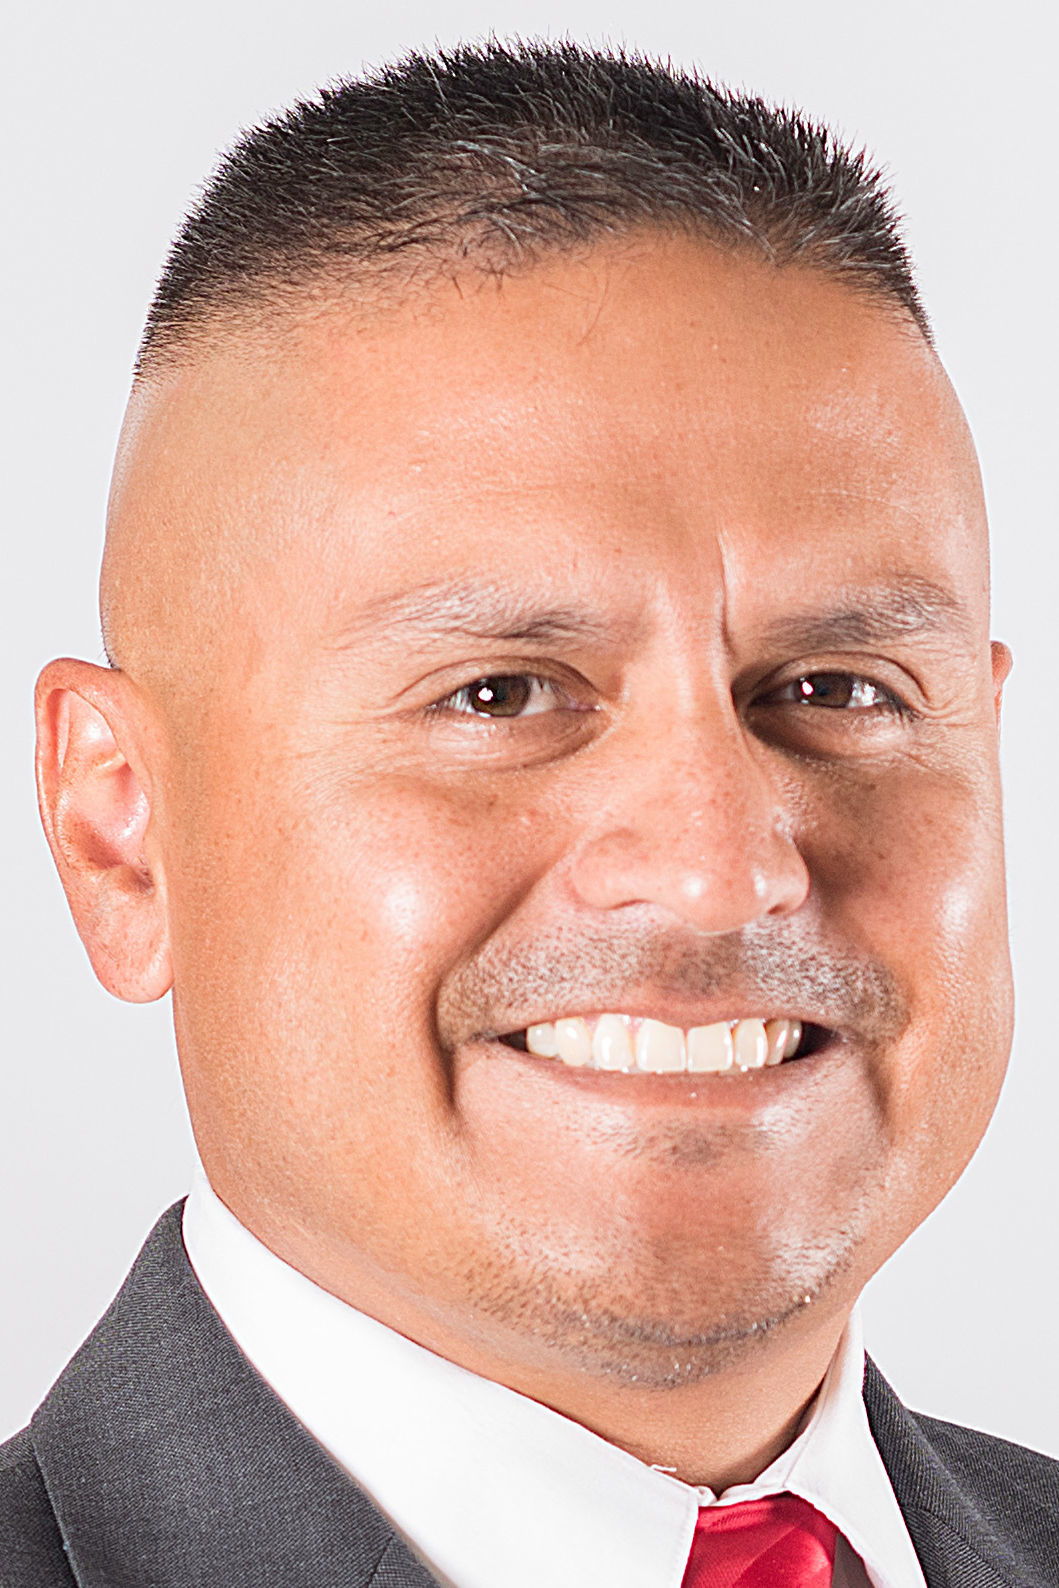 CD 2 candidate Danny Morales